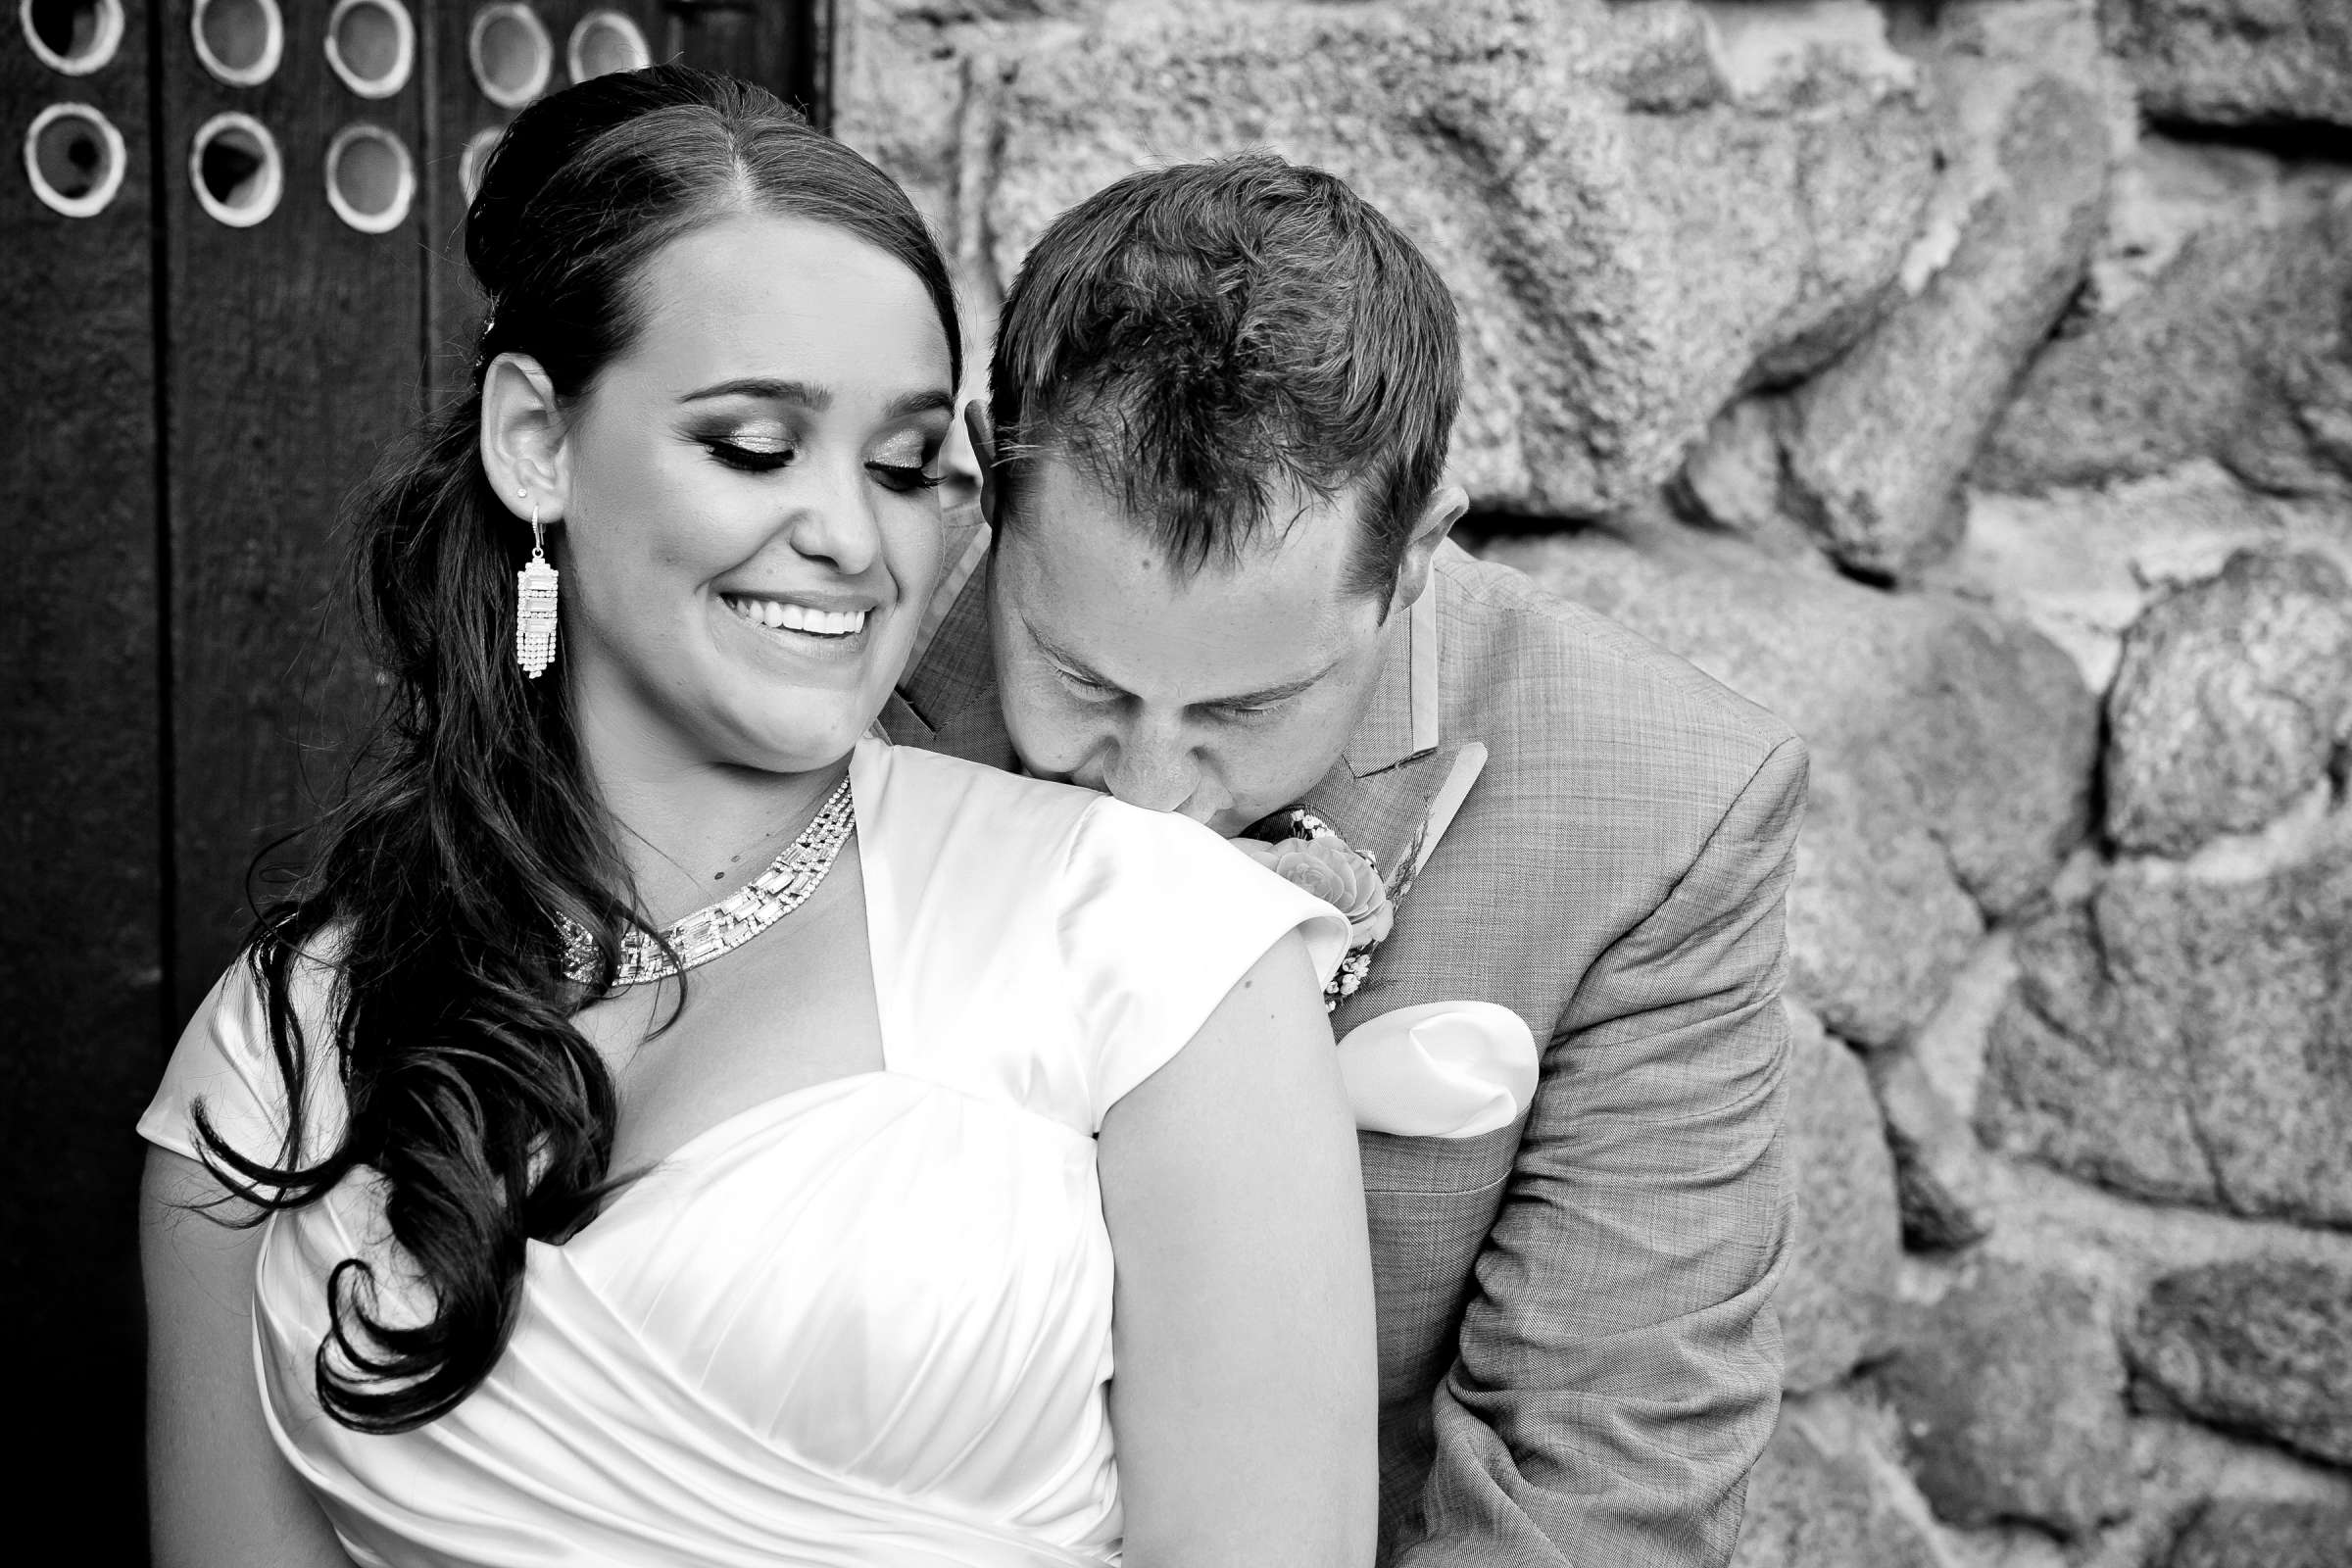 Mt Woodson Castle Wedding, Krista and Donald Wedding Photo #344684 by True Photography